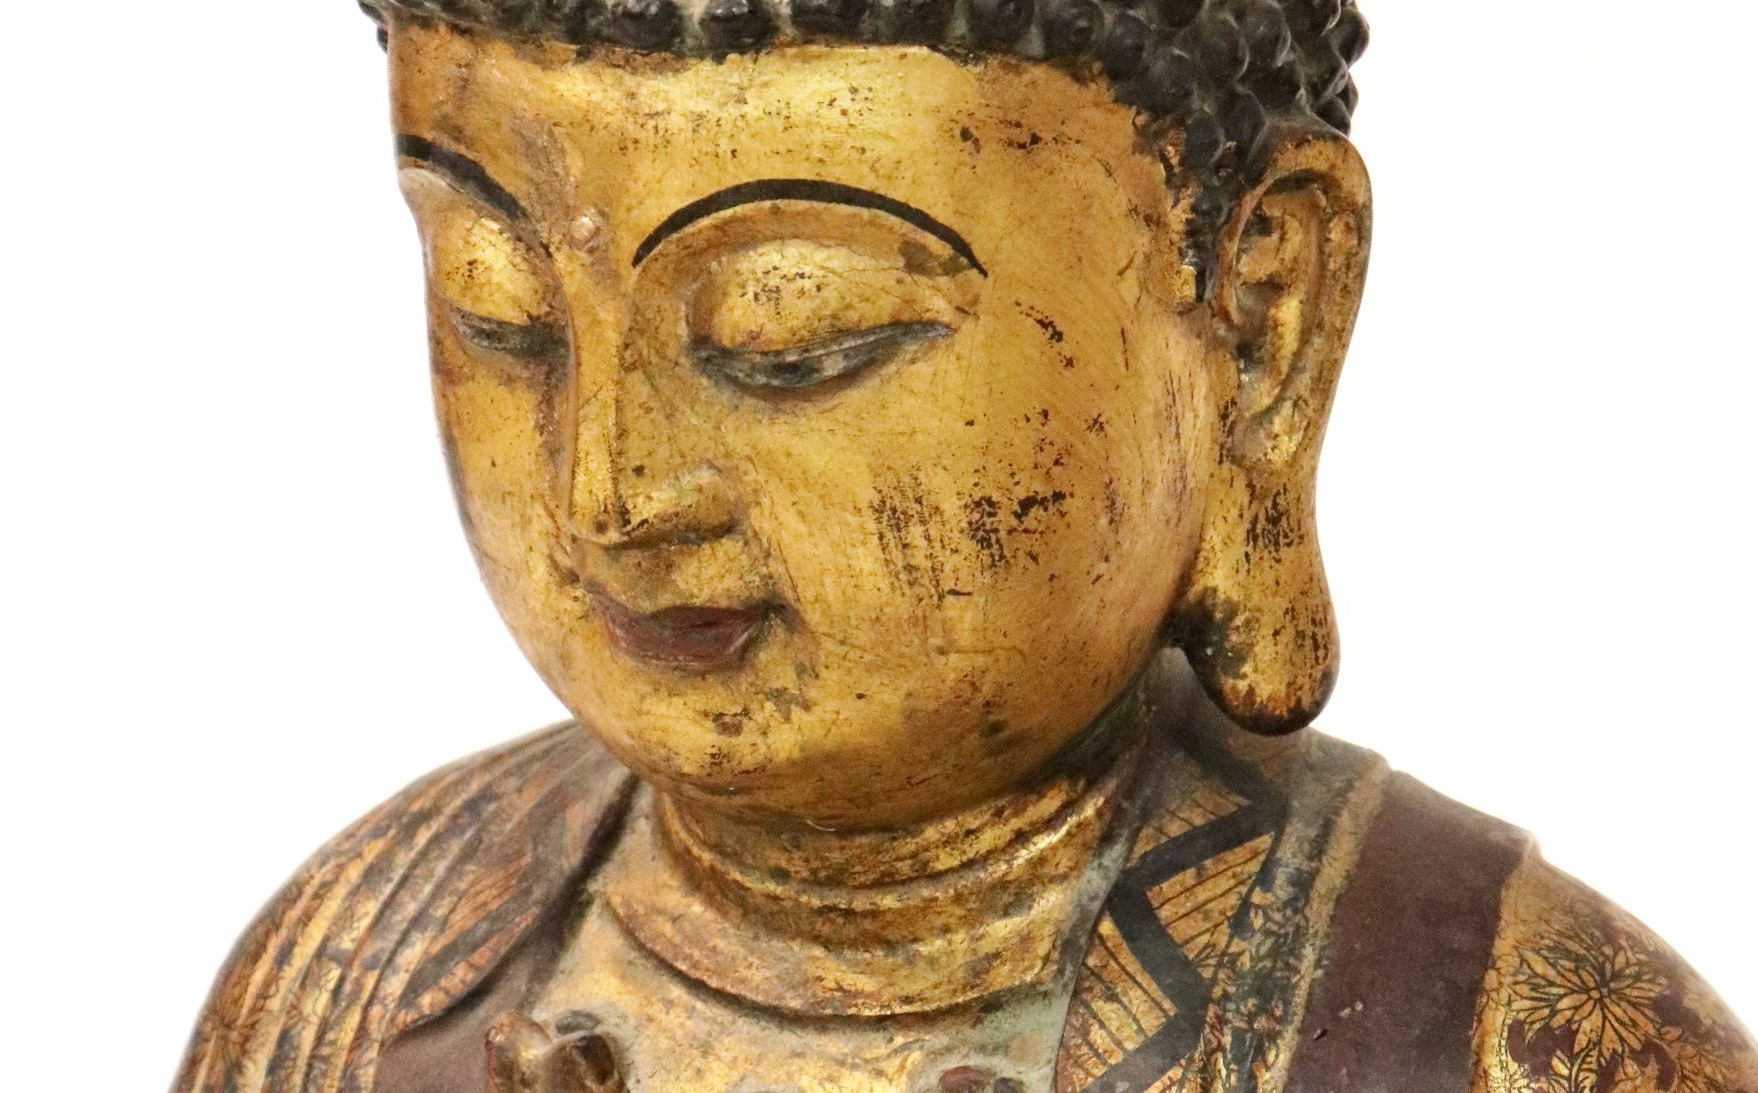 February 22, 2020 – Ended. The Winter Antiques Sale | Day 1